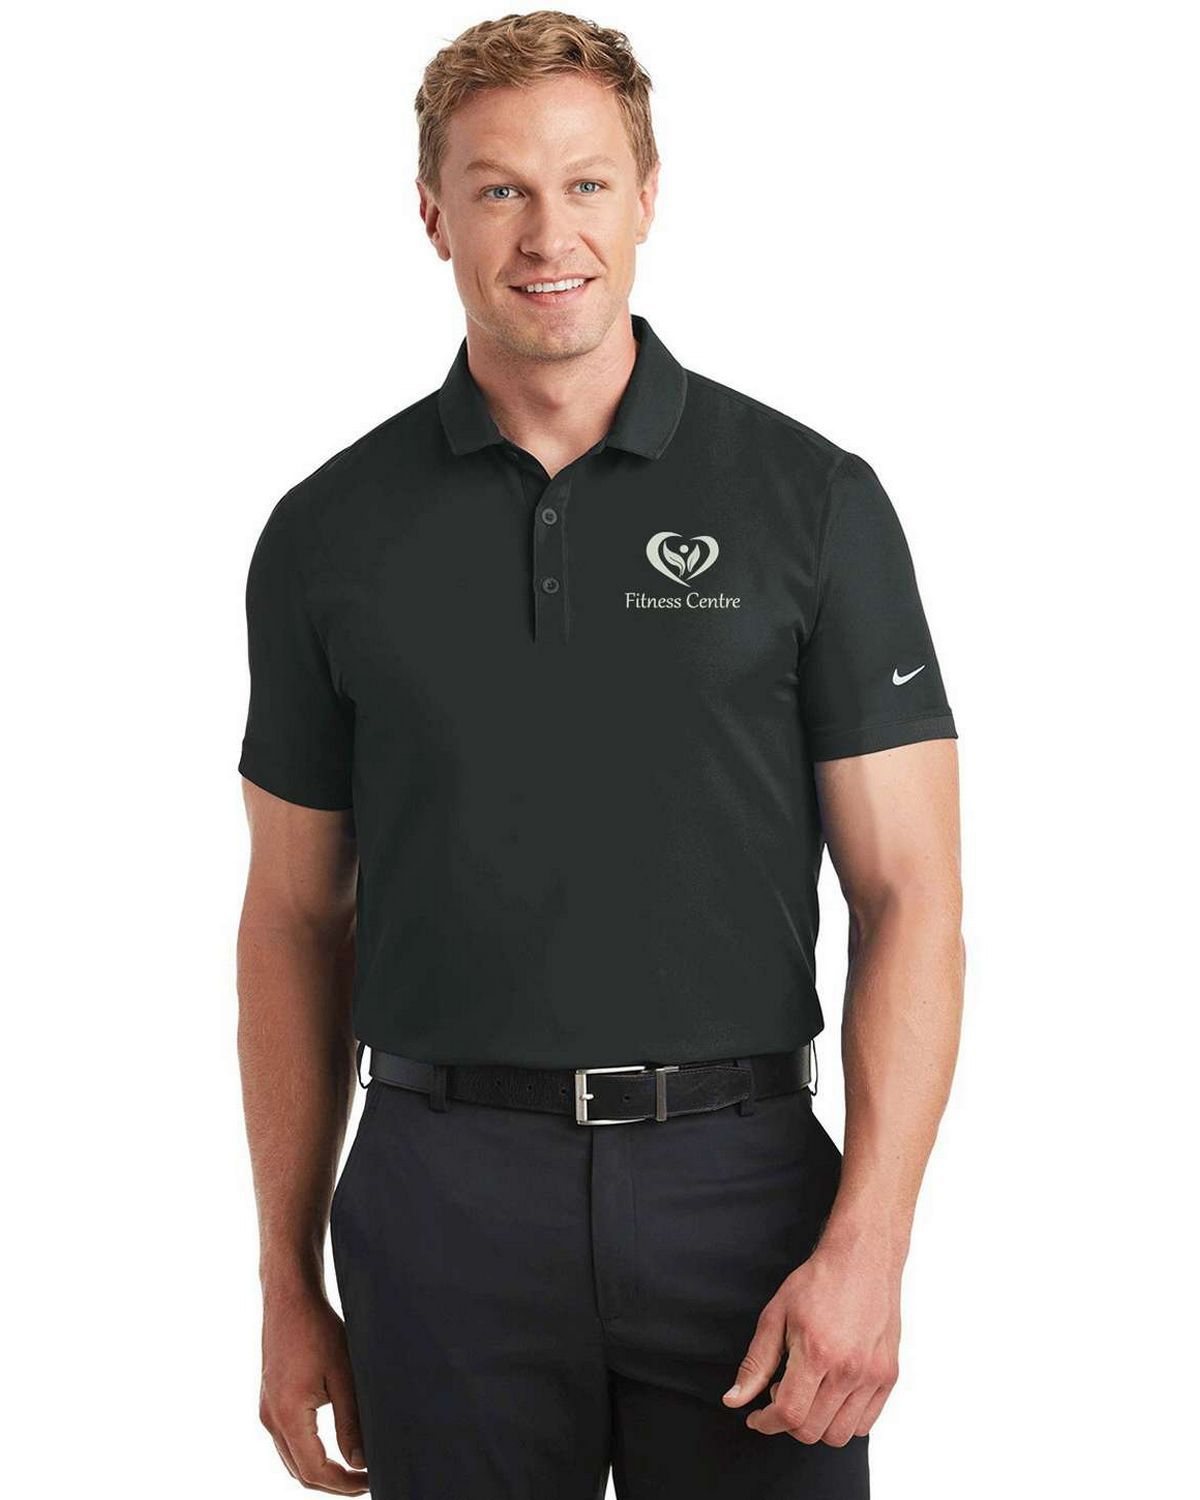 Nike golf dri fit logo embroidered woven polo size chart for Nike dri fit embroidered shirts